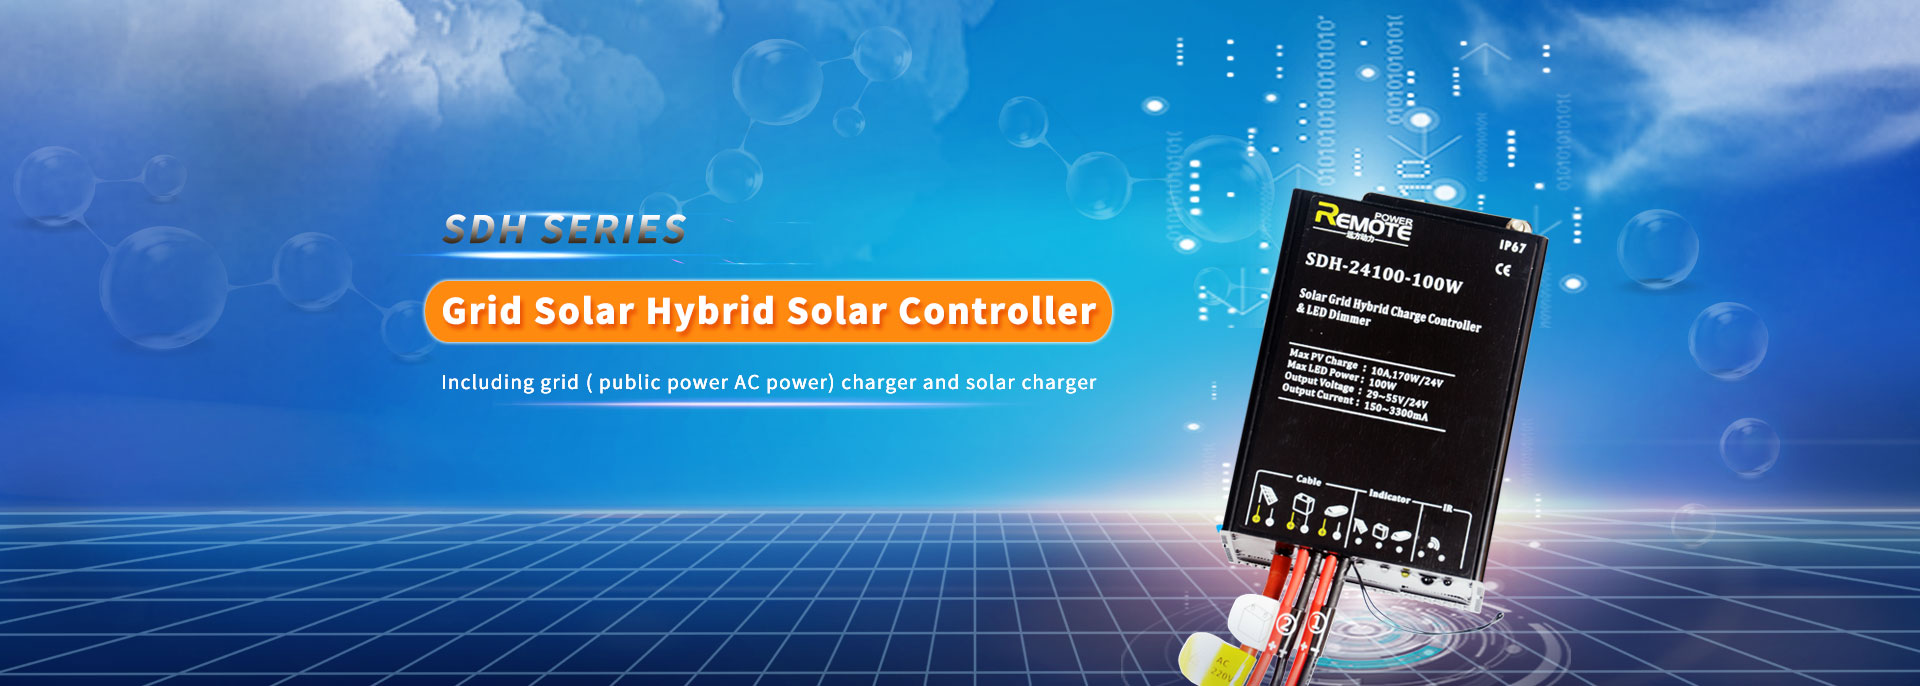 Remote Power Controller